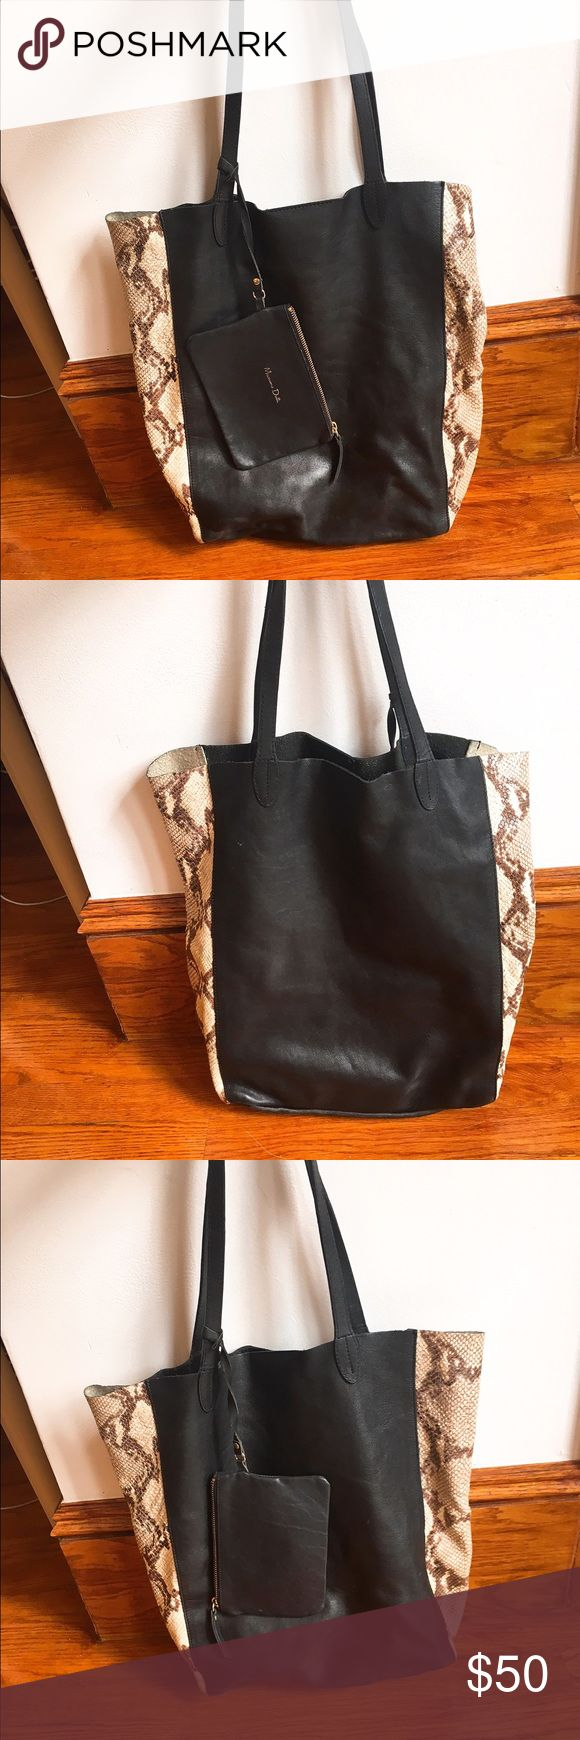 Massimo Dutti black and Python print leather tote Black leather tote by Massimo Dutti, white Python print on the side. Comes with an attached pouch for keys and essentials. Used a number of times but in great condition with a lot of use left! Massimo Dutti Bags Totes